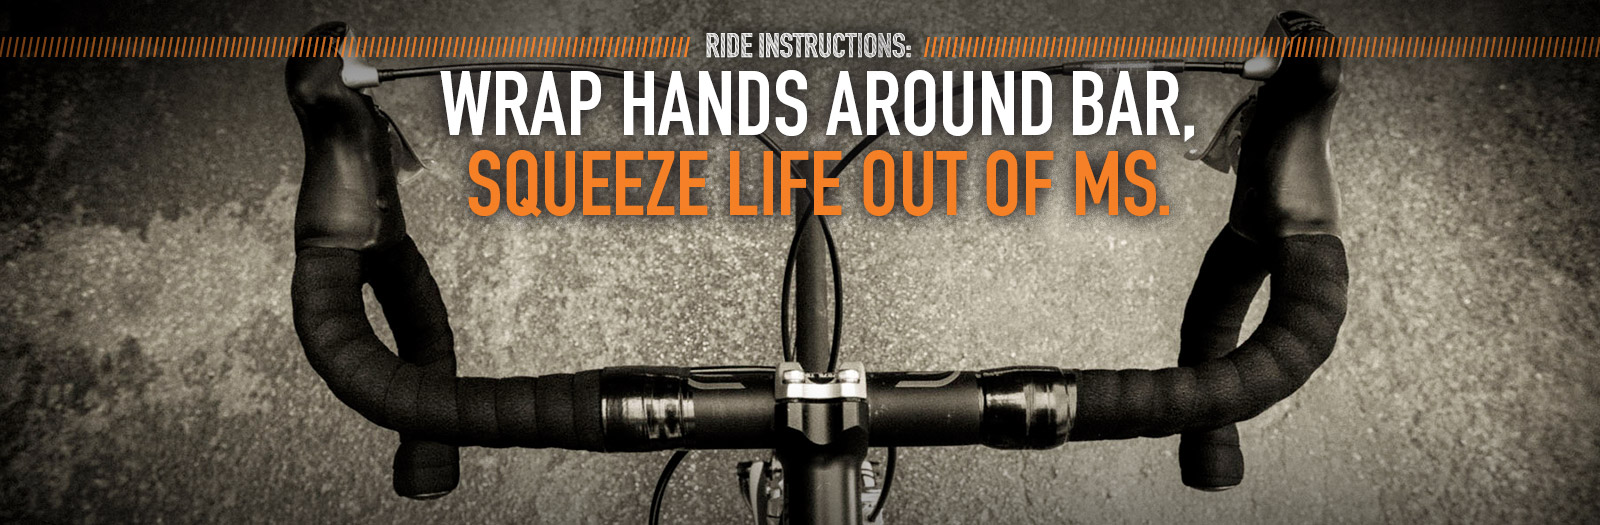 Squeeze life out of MS